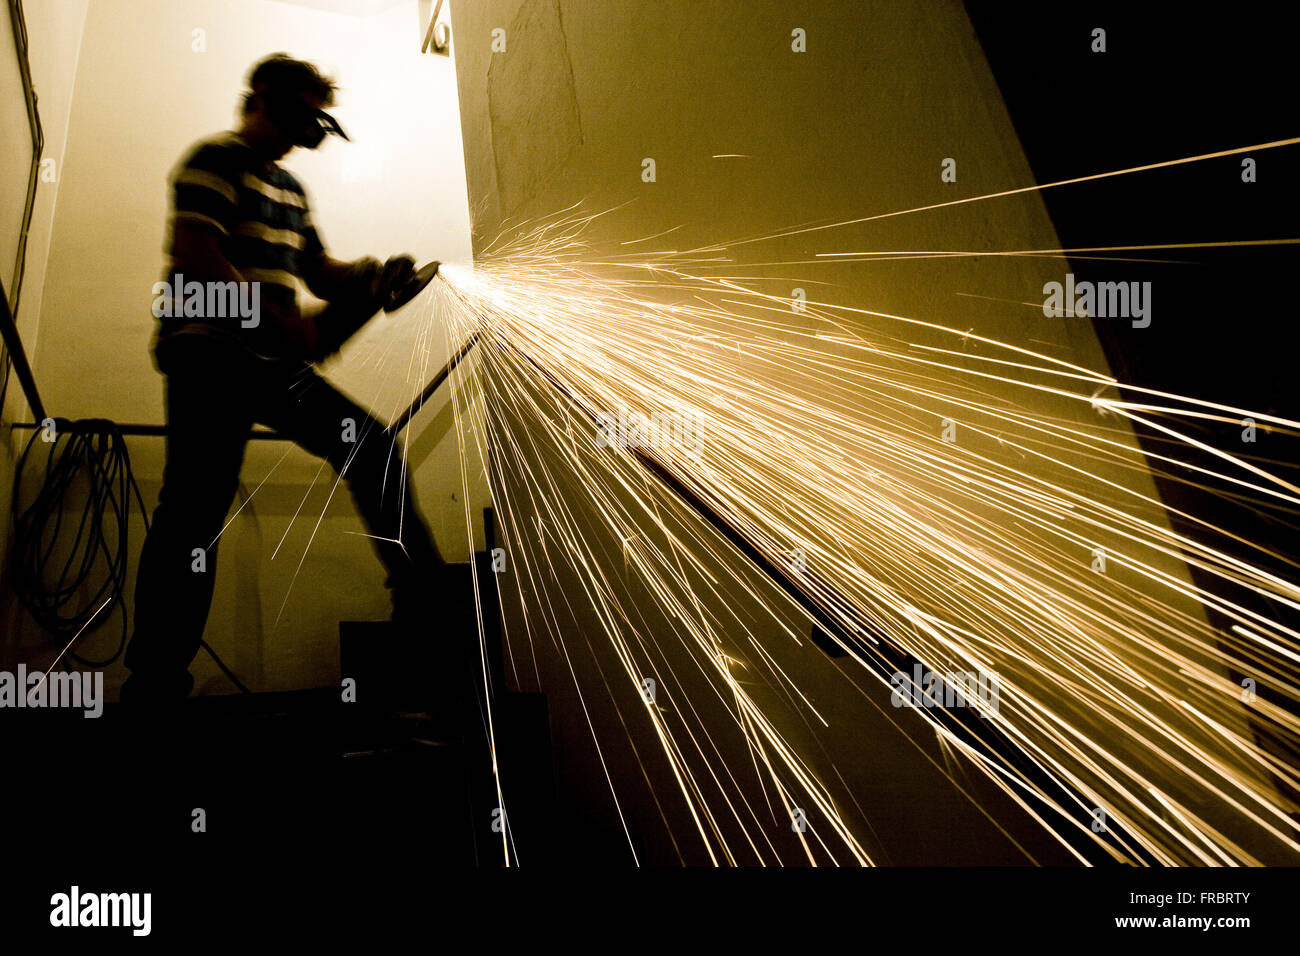 Workman using emery to fix handrail stair residential building - Stock Image